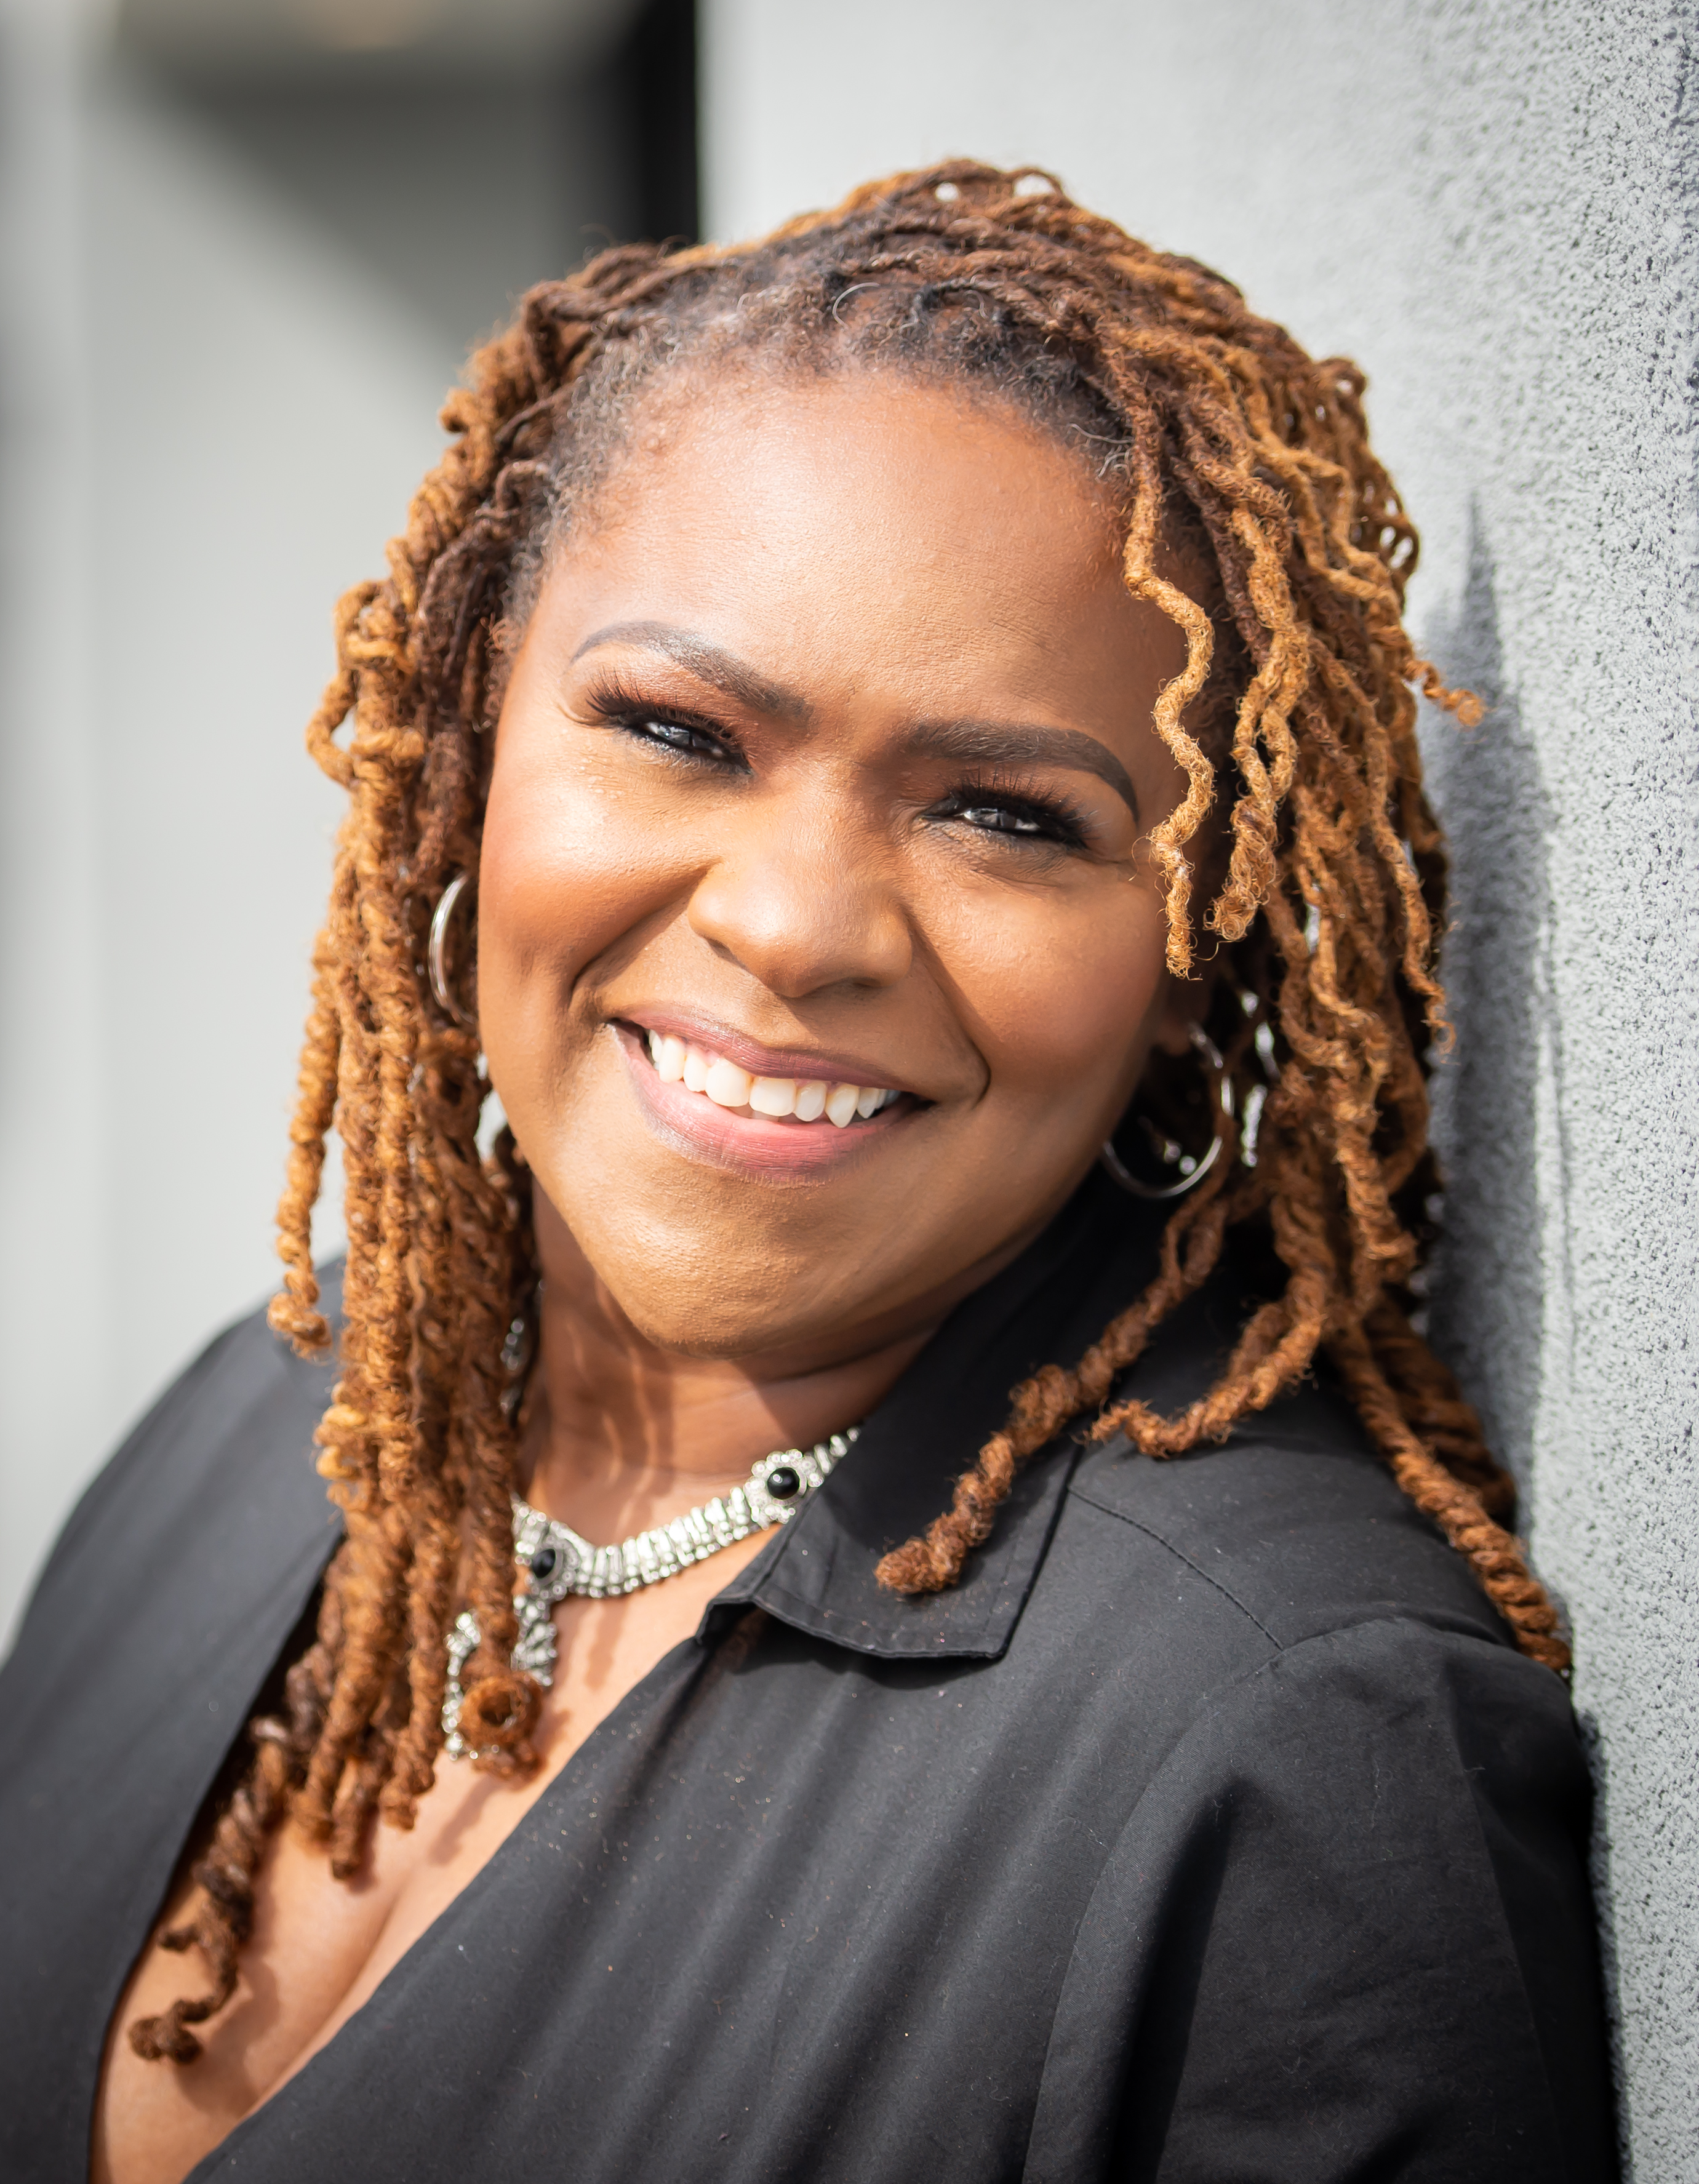 Prominent Author and Speaker, Deloria Nelson Streete, is Set to Launch Her Book: 'From Six figures to Food Stamps to Six Figures' on June 1, 2020.